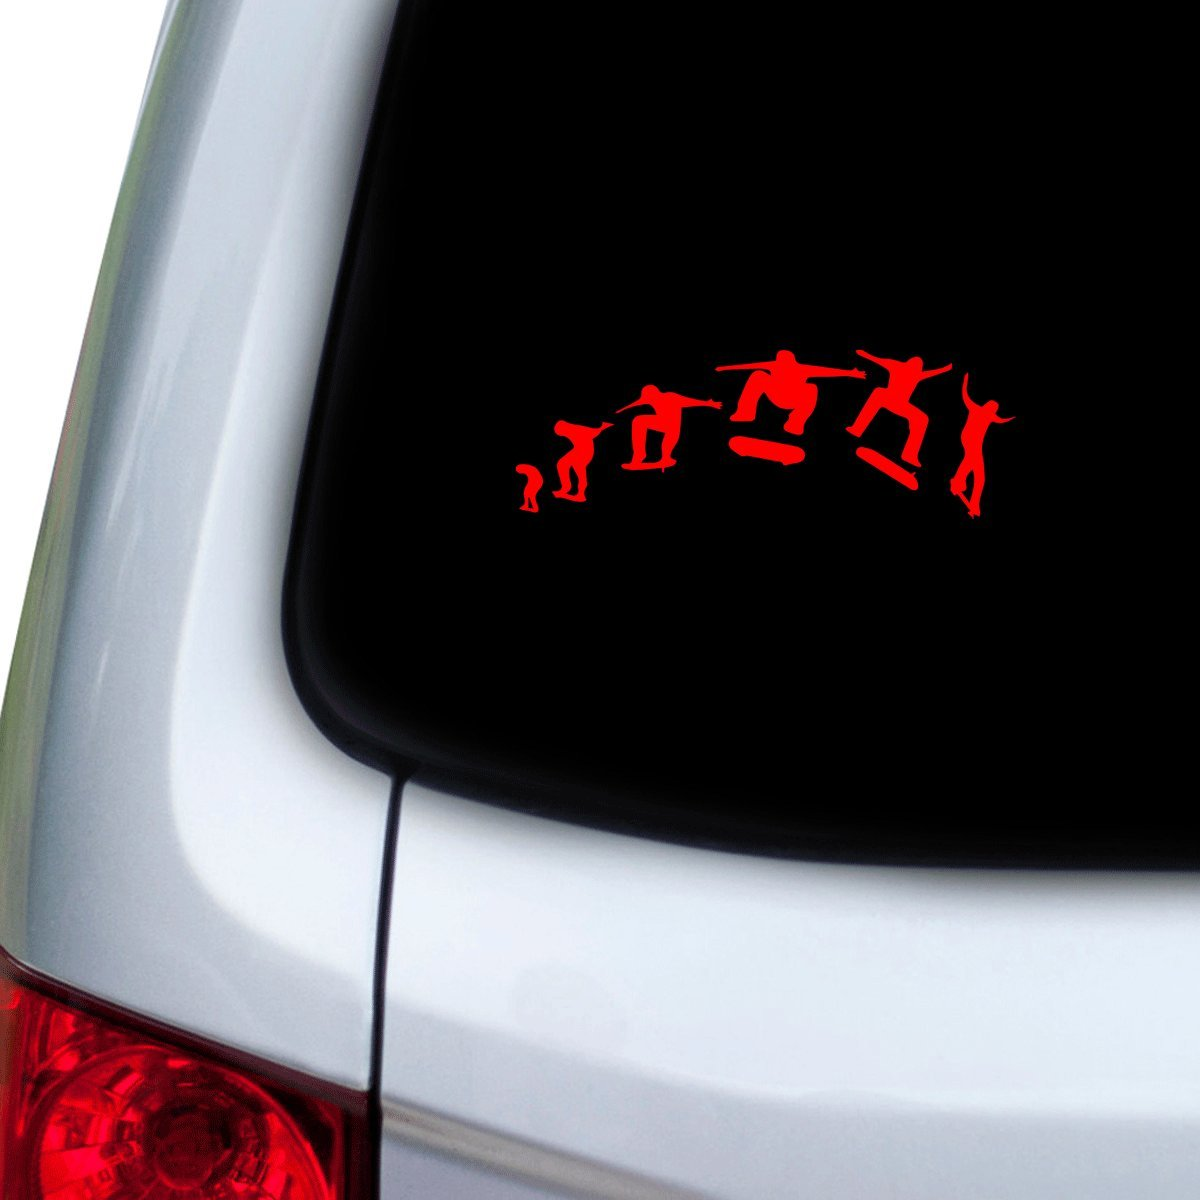 Hoods StickAny Car and Auto Decal Series Skateboard Sequence Sticker for Windows Red Doors